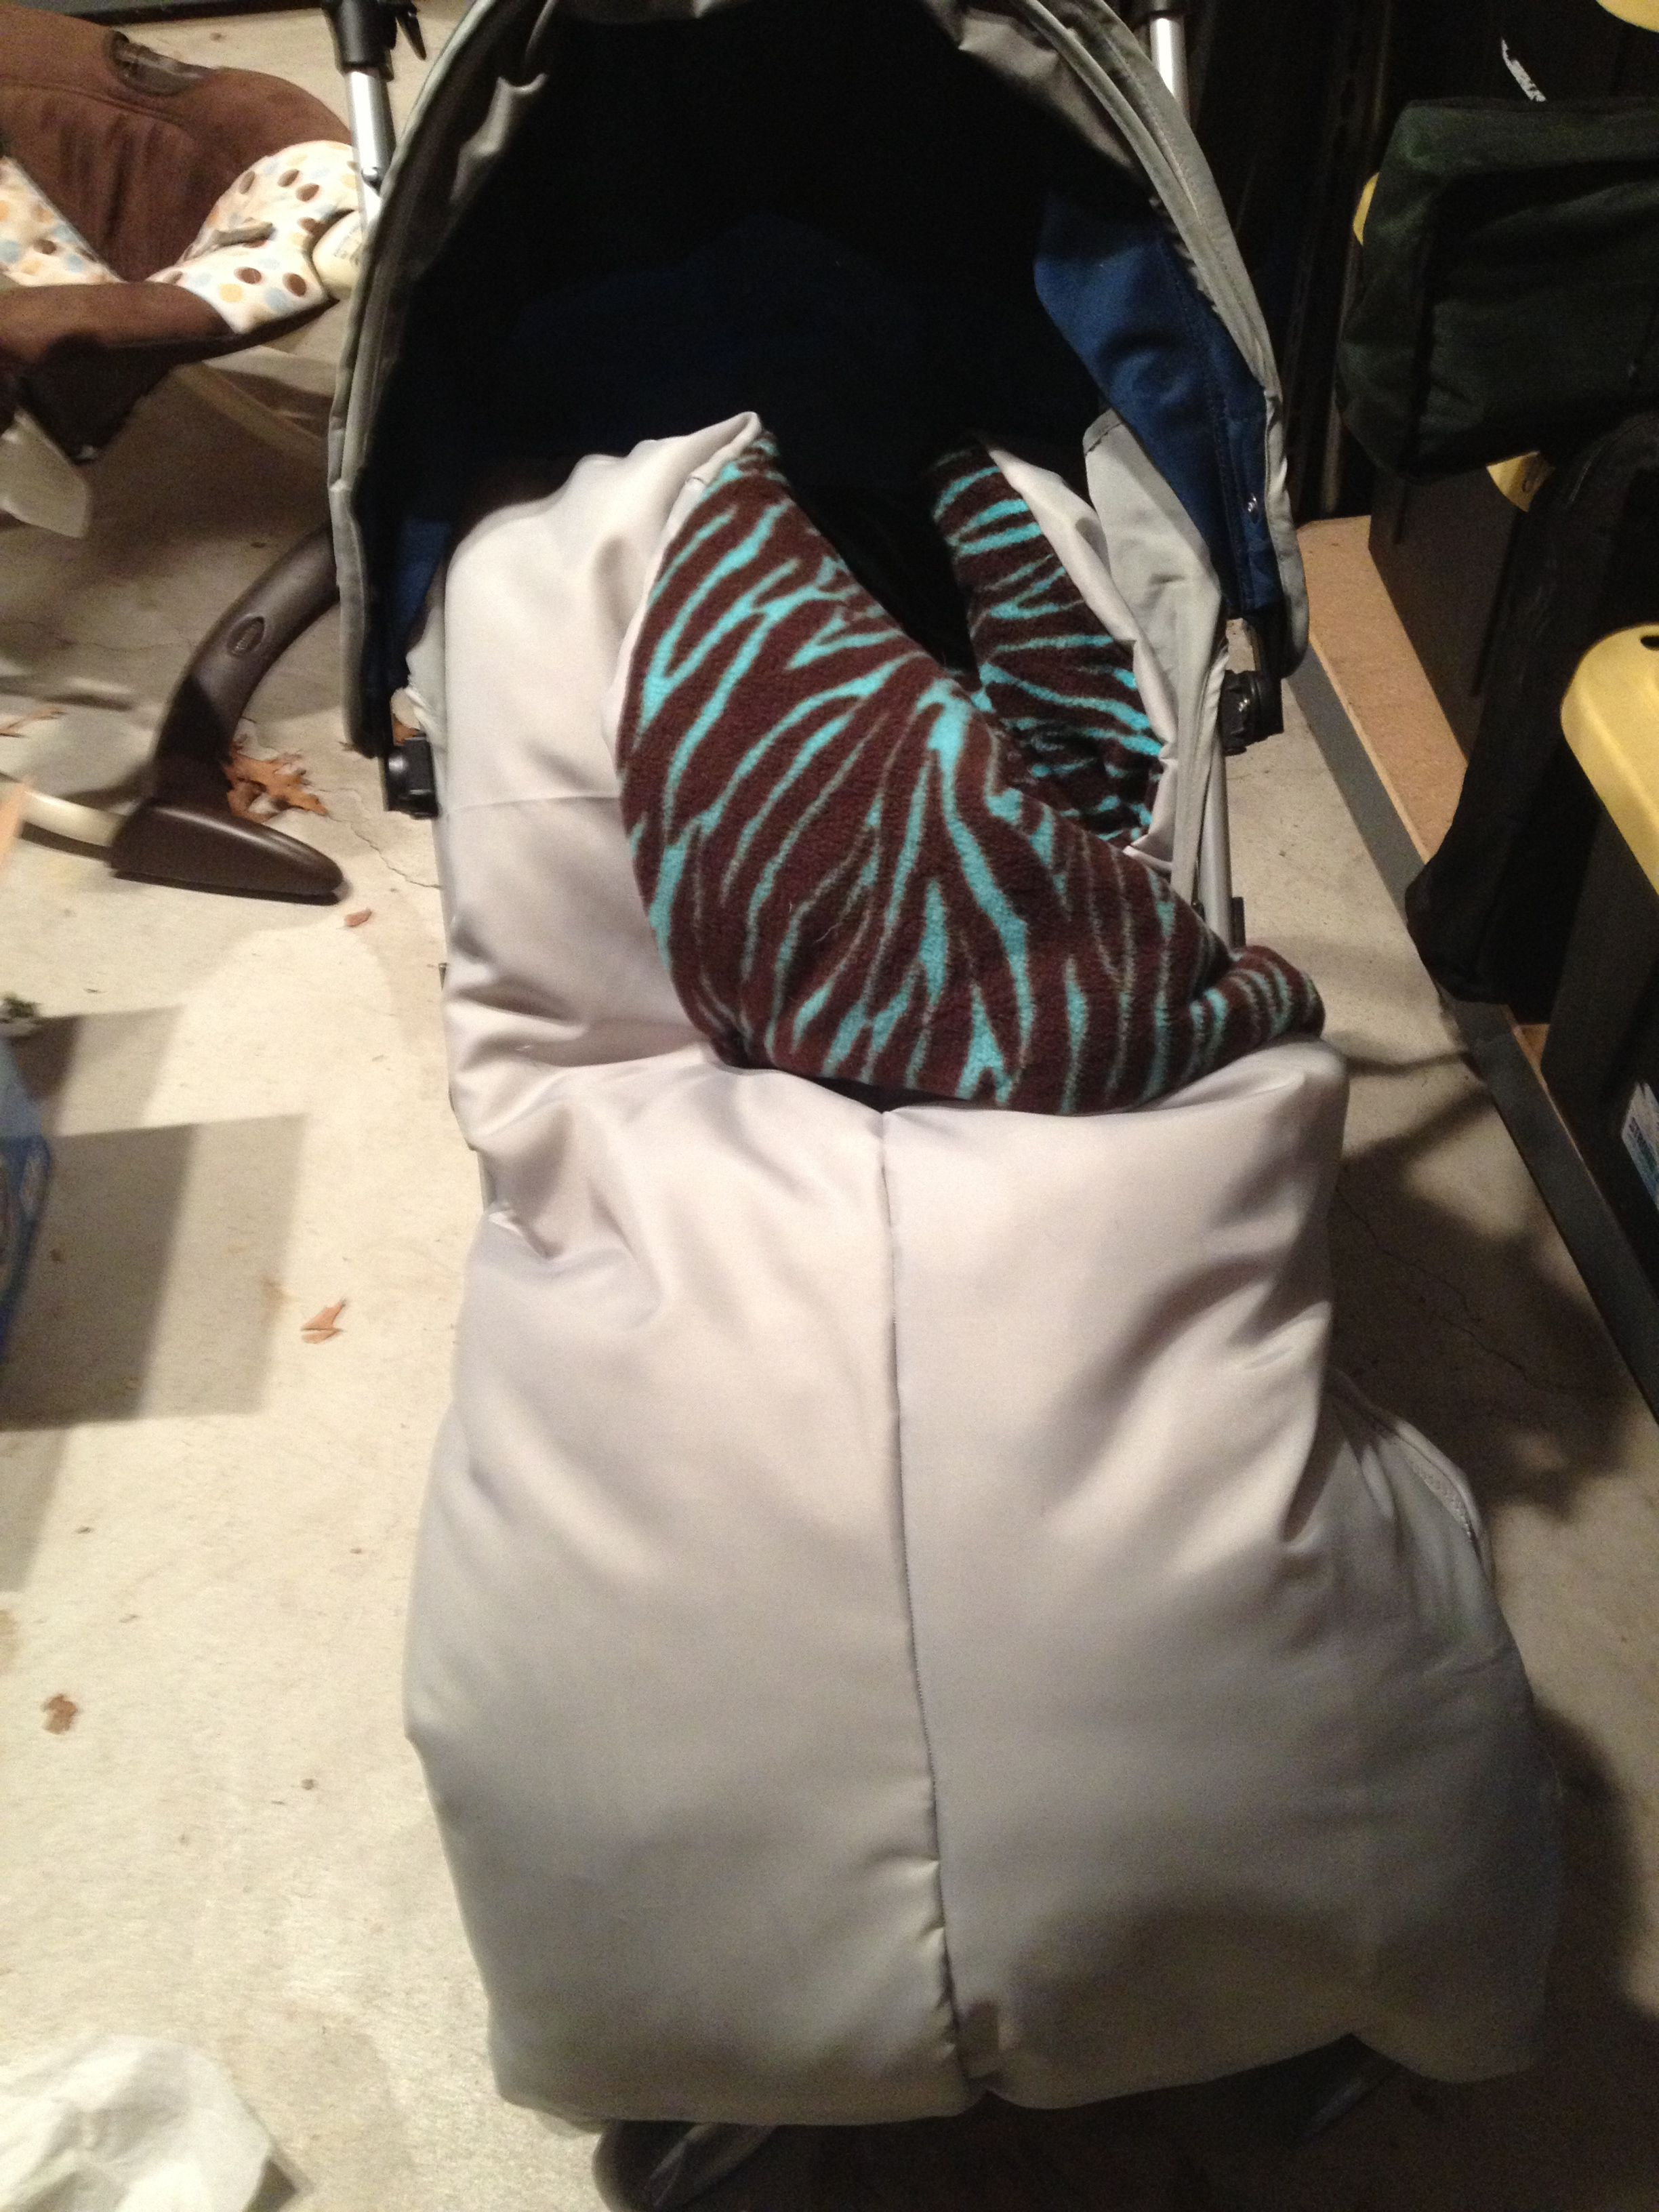 Or sleeping bags clothes pegs optional fairy lights optional - Diy Bundle Me I Call It A Stroller Sleeping Bag I Made It